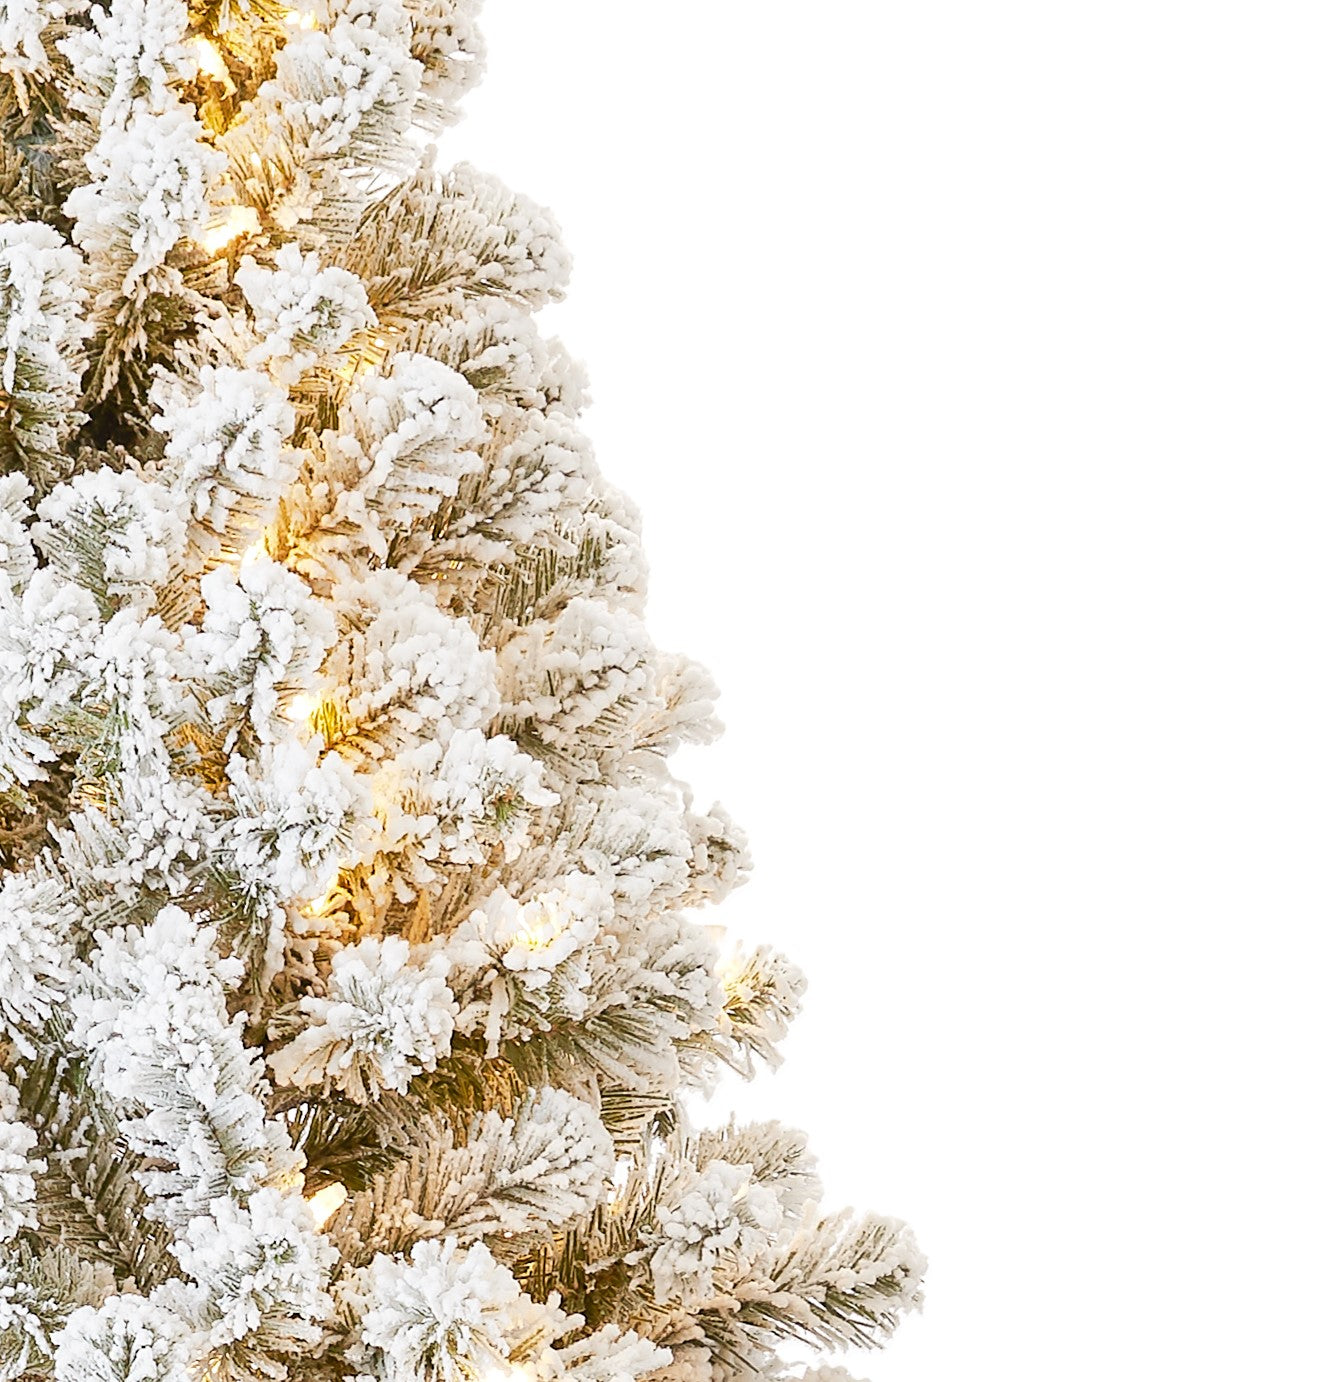 Artificial Christmas Tree.7 Prince Flock Artificial Christmas Tree With 400 Warm White Led Lights